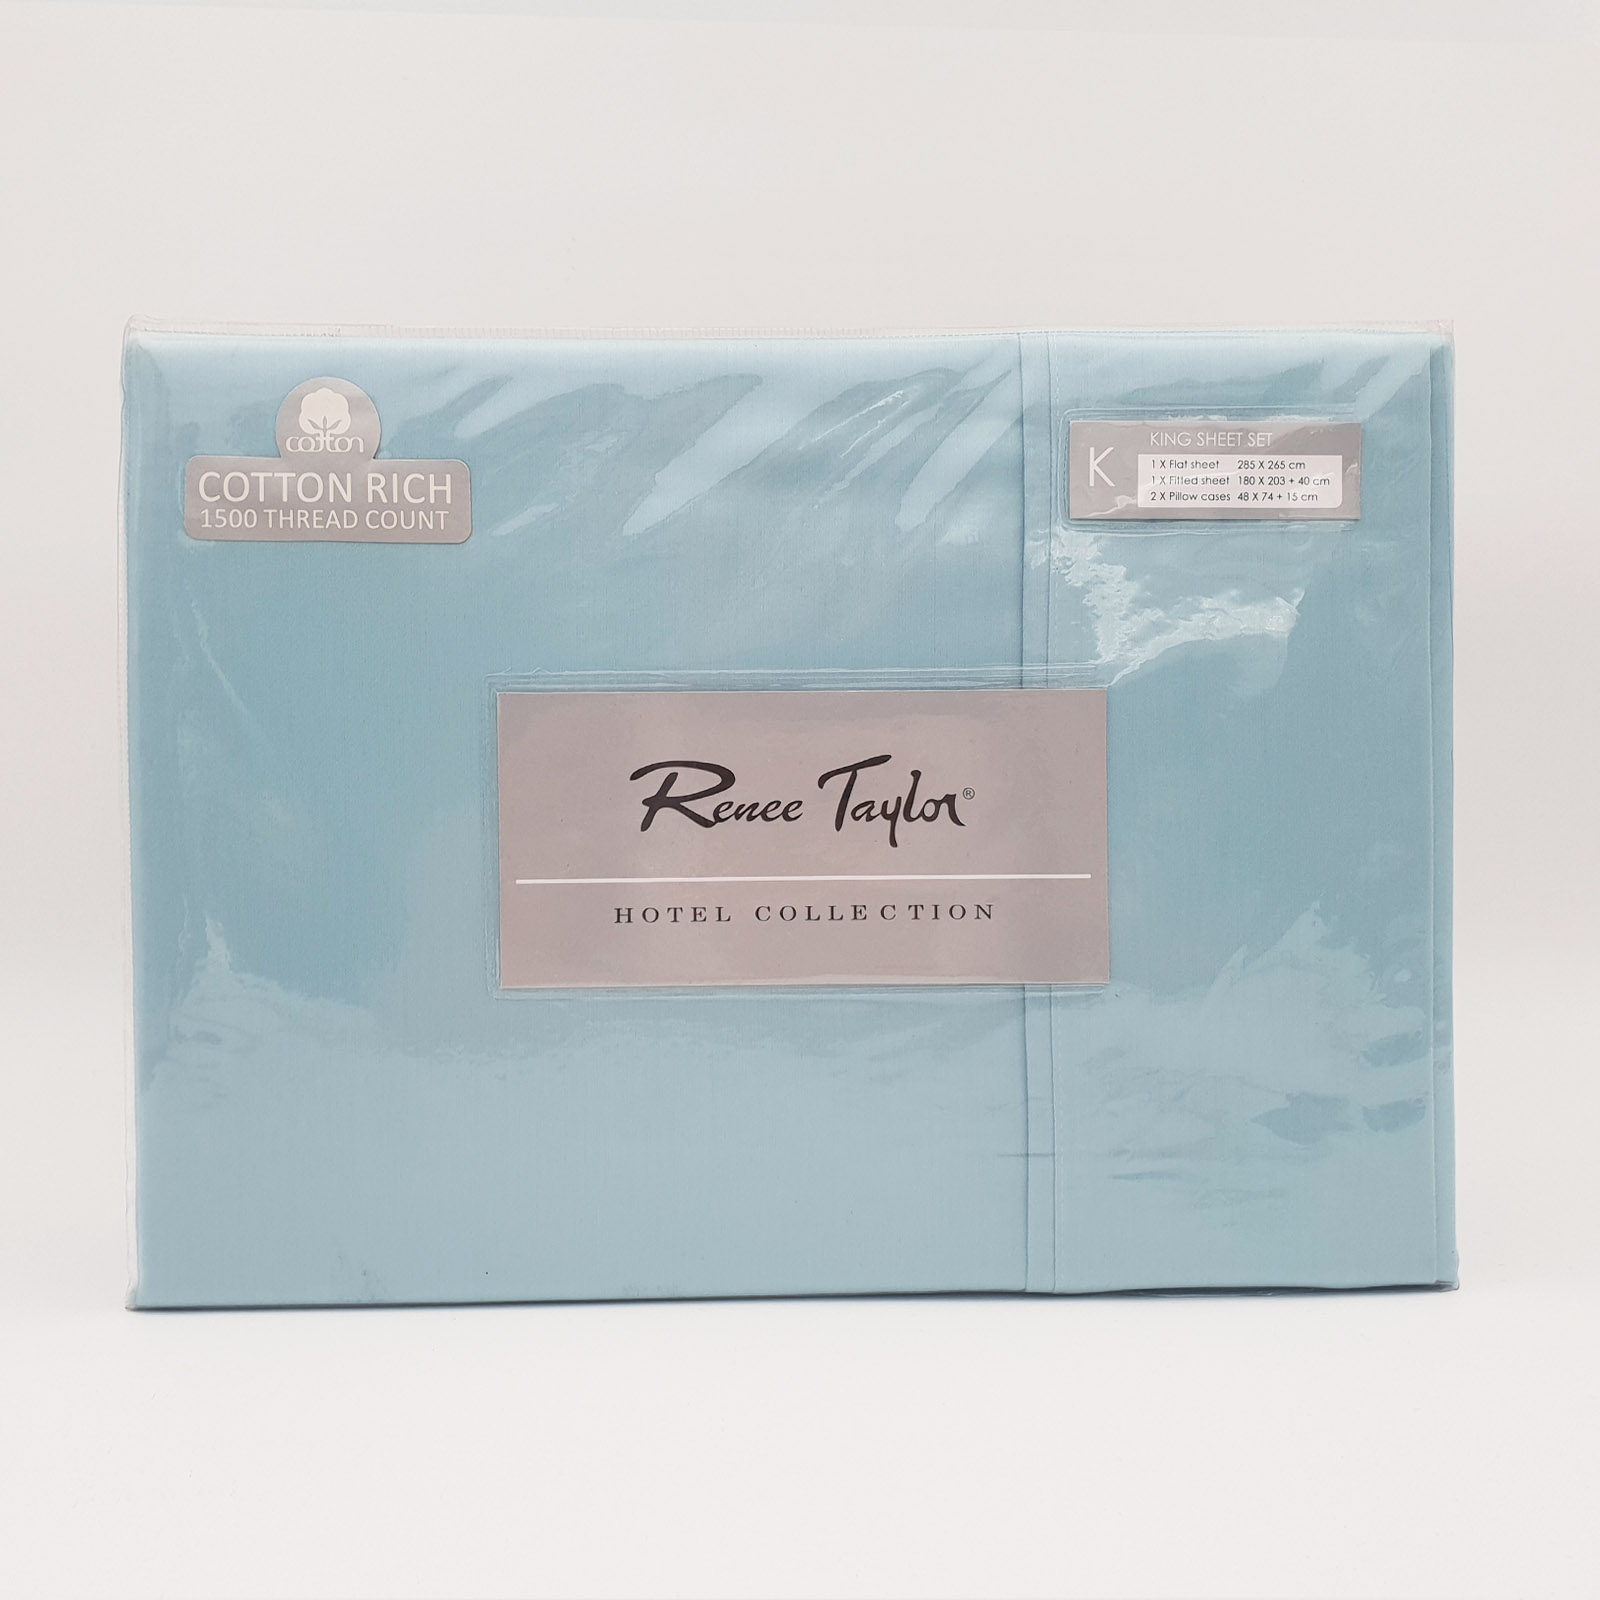 Renee-Taylor-1500-Thread-Count-Pure-Soft-Cotton-Blend-Flat-amp-Fitted-Sheet-Set thumbnail 14